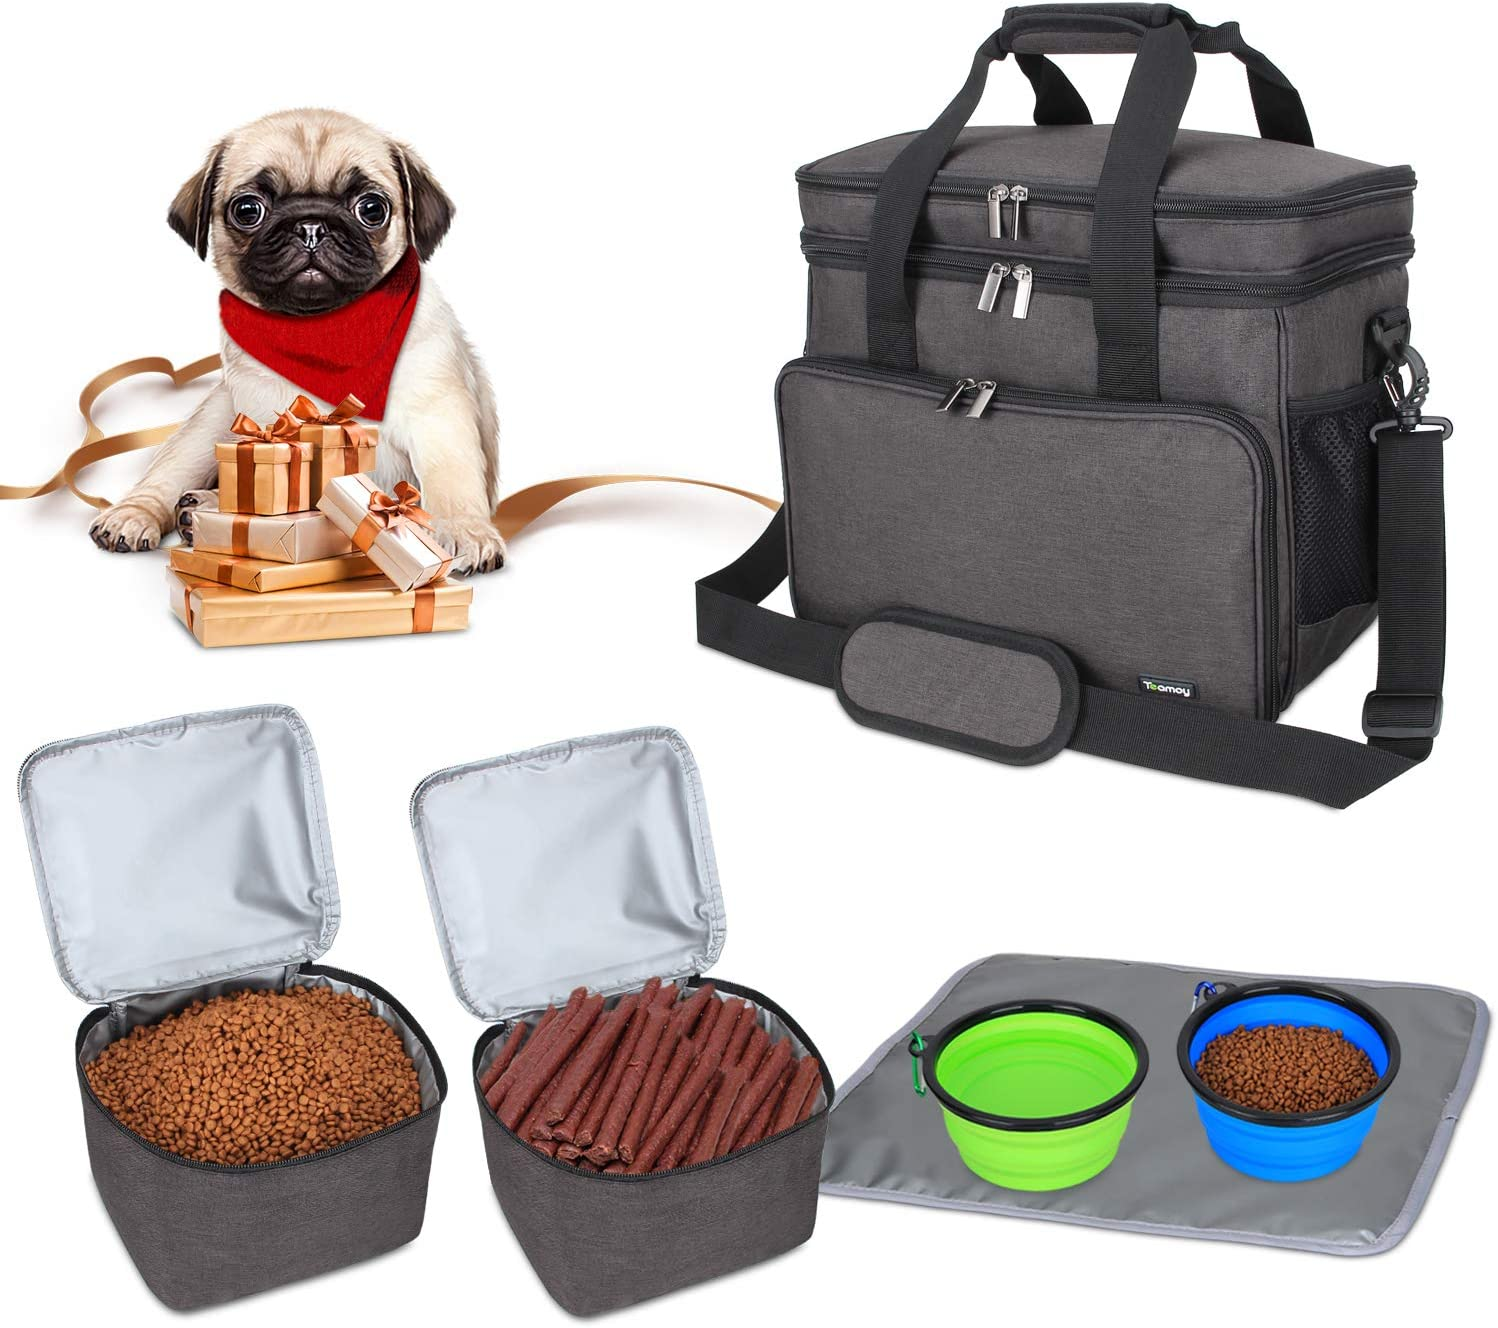 Teamoy Double Layer Dog Travel Bag with 2 Silicone Collapsible Bowls, 2 Food Carriers, 1 Water-Resistant Placemat, Pet Supplies Weekend Tote Organizer(Medium, Black)